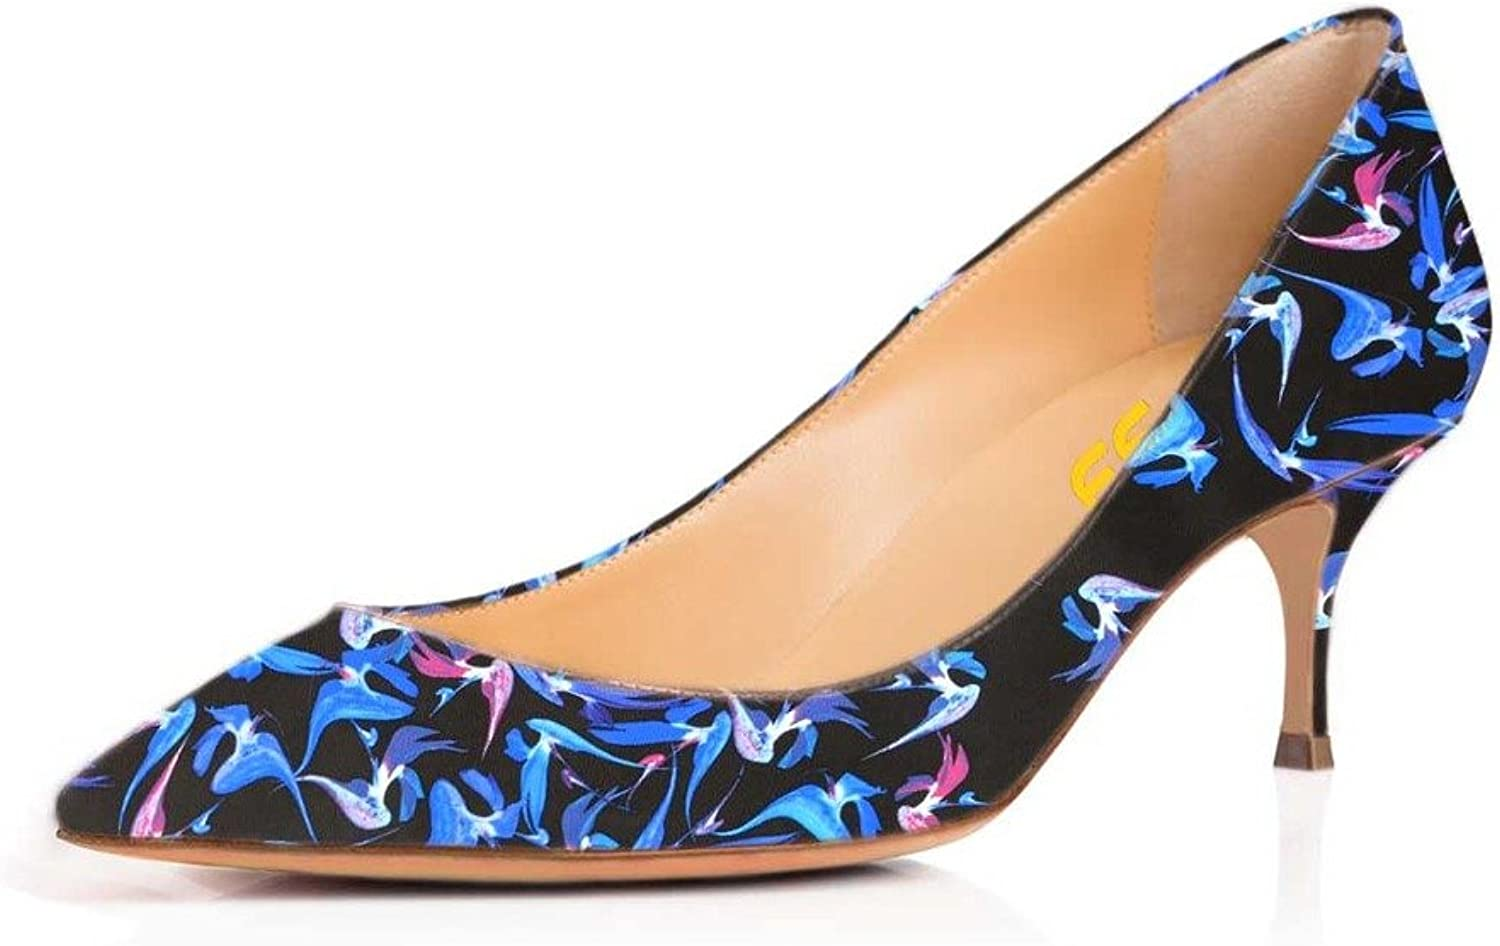 FSJ Fashion Black Pumps for Women with Pointed Toe Heels Slip on shoes Size 4-15 US